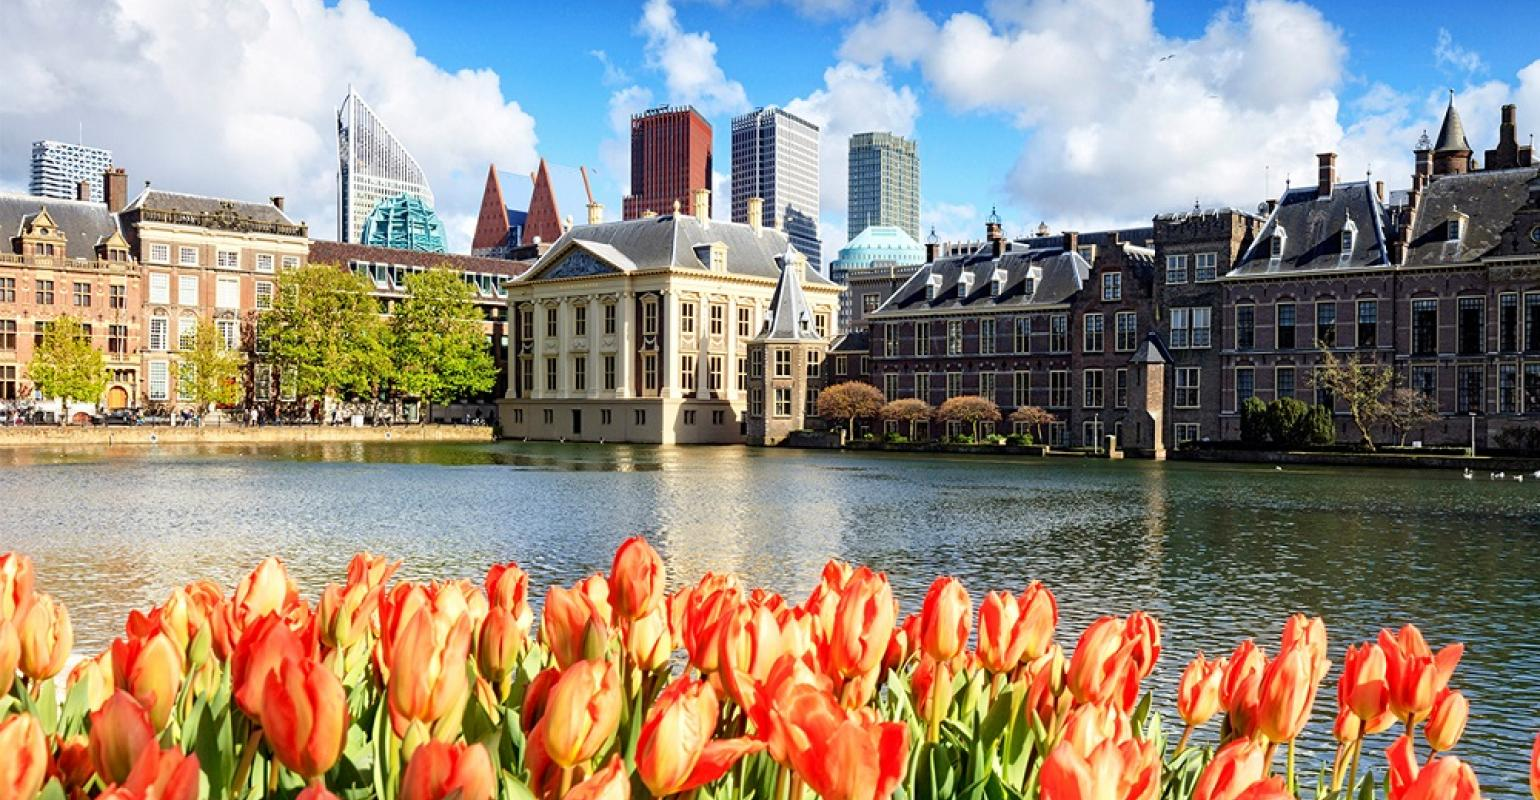 The Hague: The City that Suits All Tastes | MeetingsNet